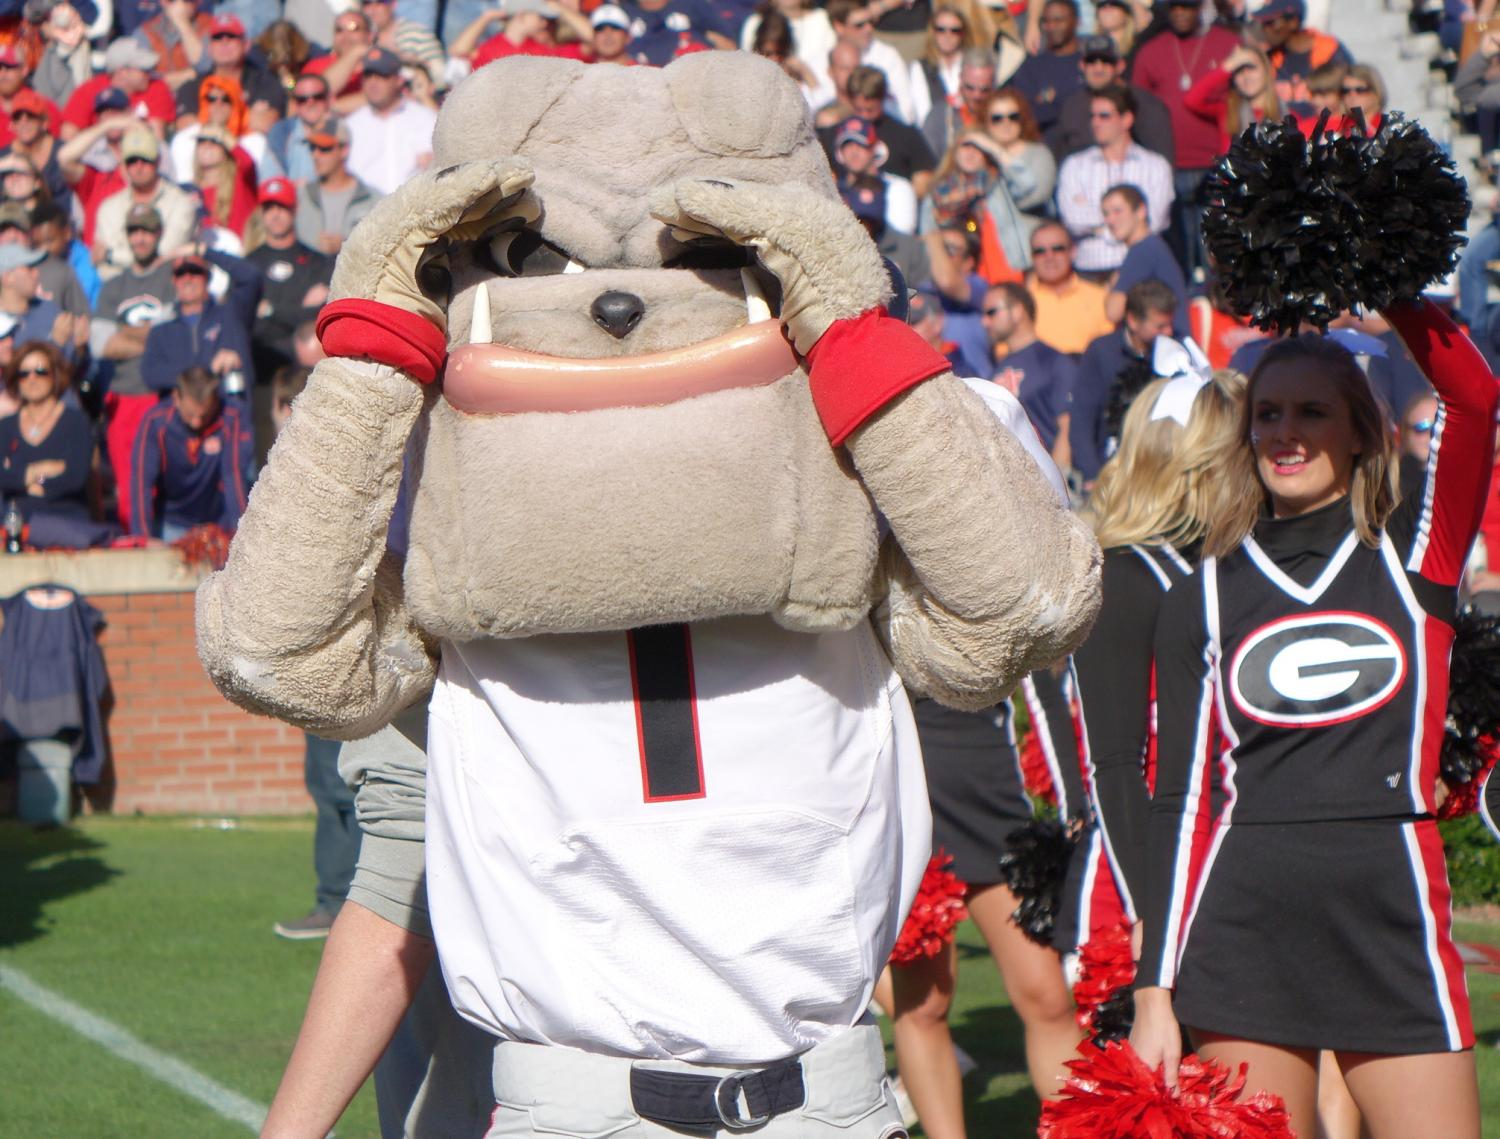 Hairy Dawg at Georgia vs. Auburn - 14-Nov-2015 (Photo by Bulldawg Illustrated's Greg Poole)